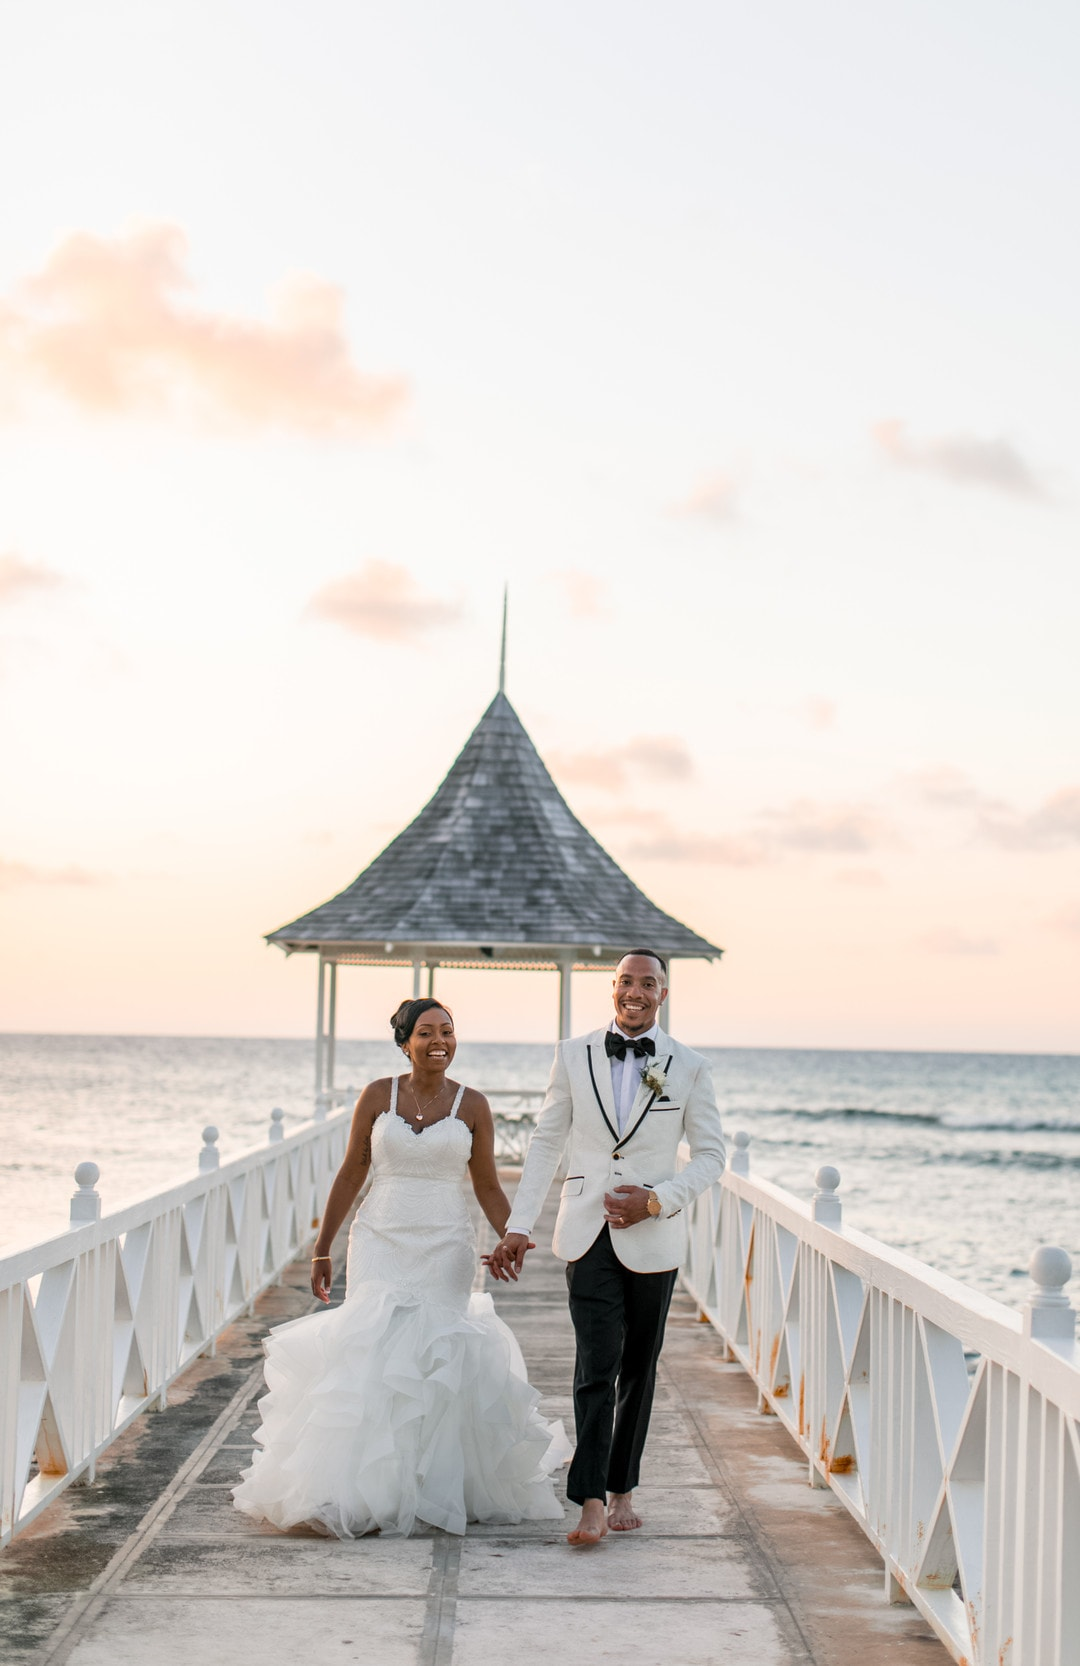 Taylor-Made for Jazzy At Half Moon Resort, Jamaica, Photography by Anee Atelier for Luxury Destination Blog Adriana Weddings